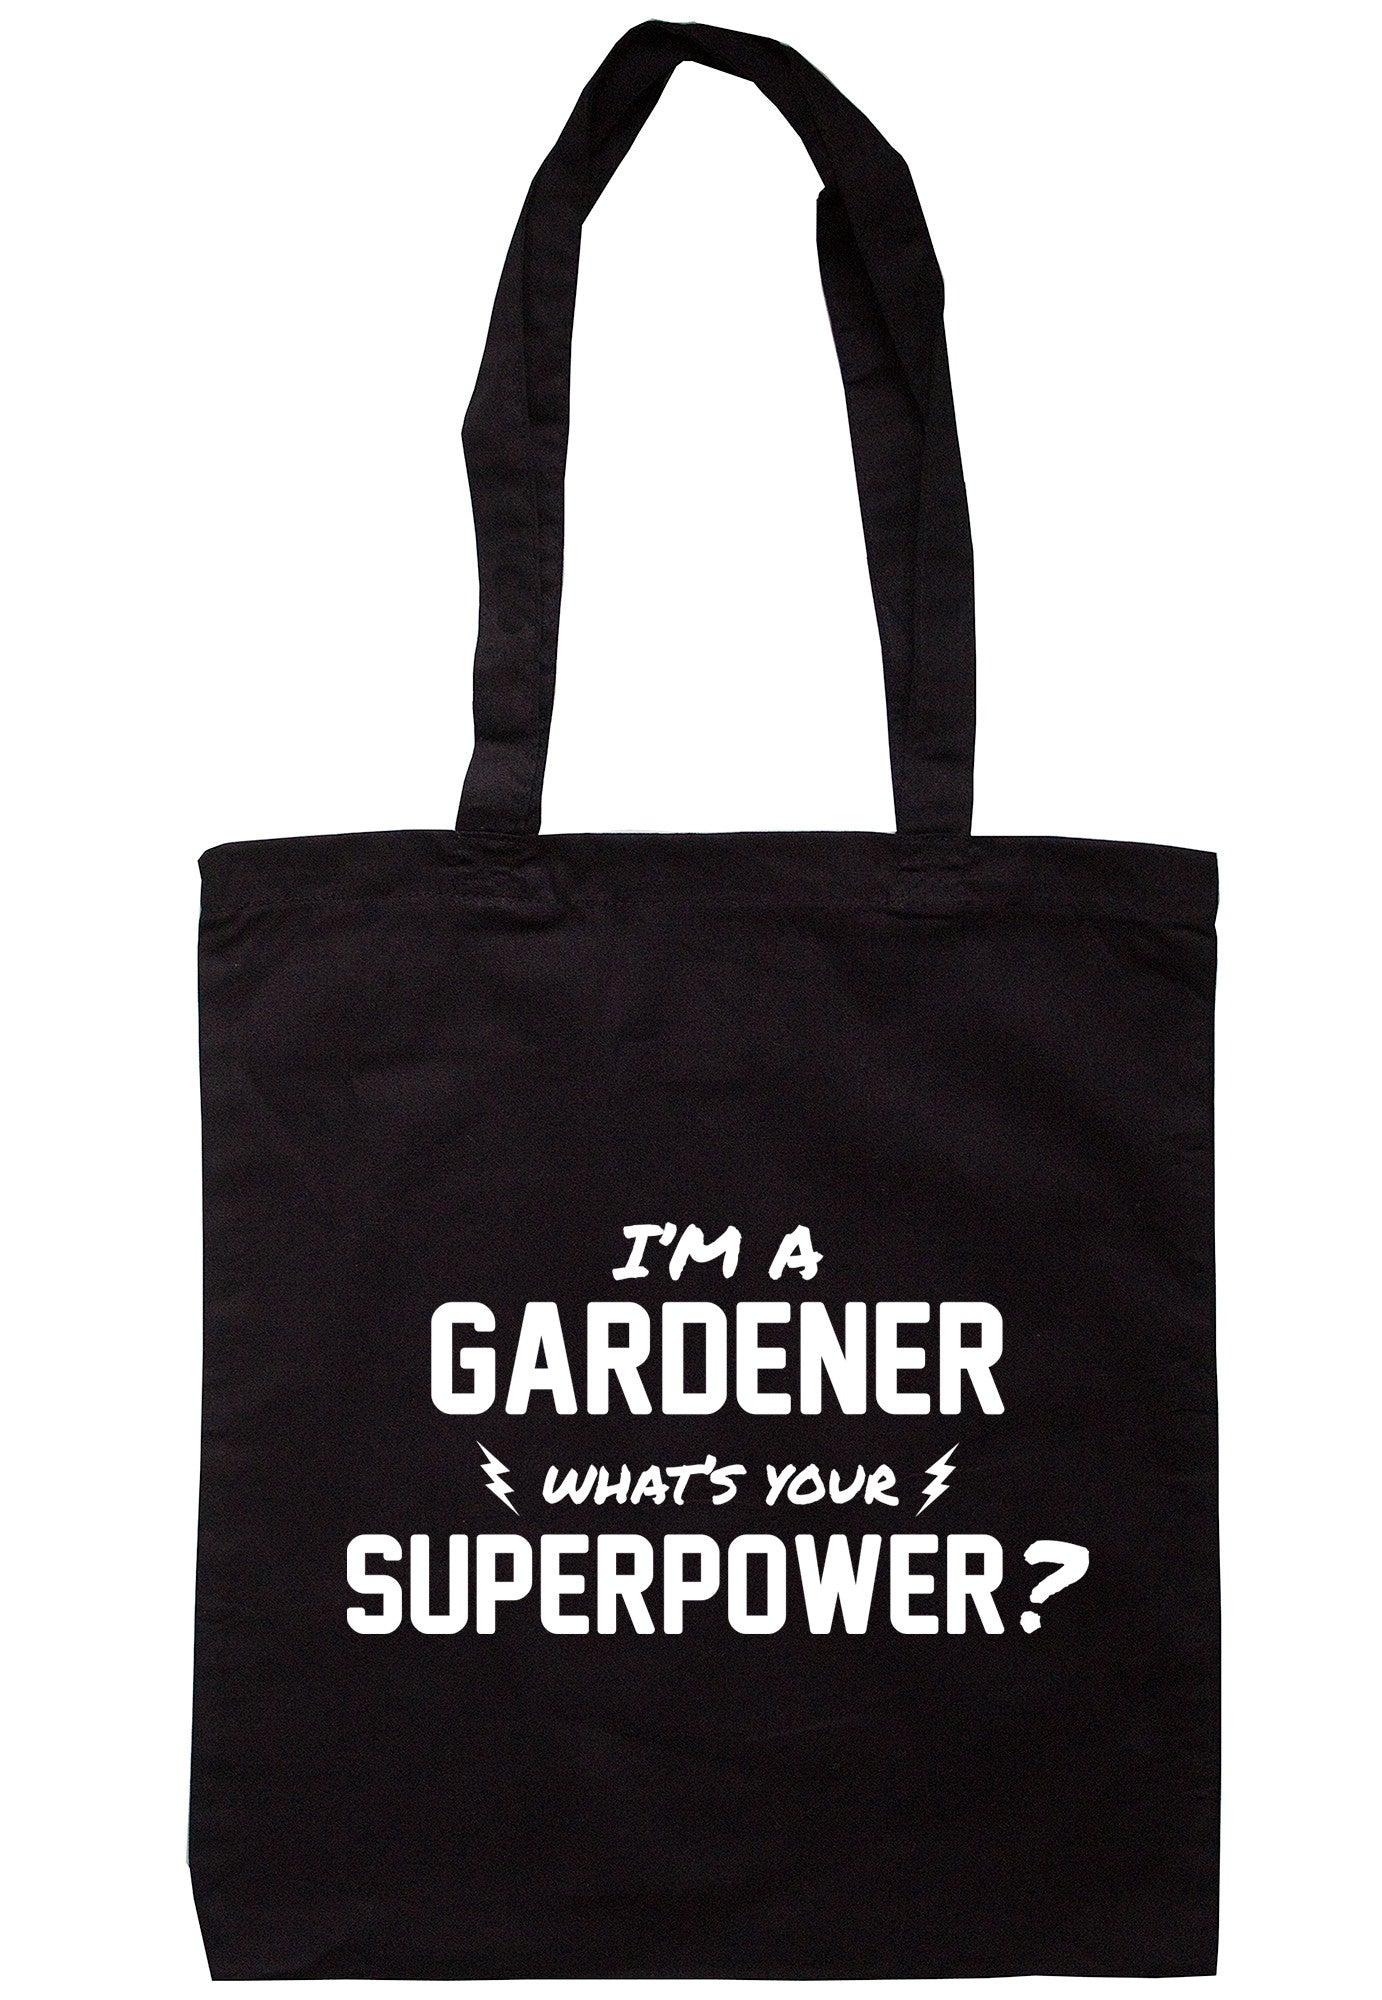 I'm A Gardener What's Your Superpower? Tote Bag TB0520 - Illustrated Identity Ltd.